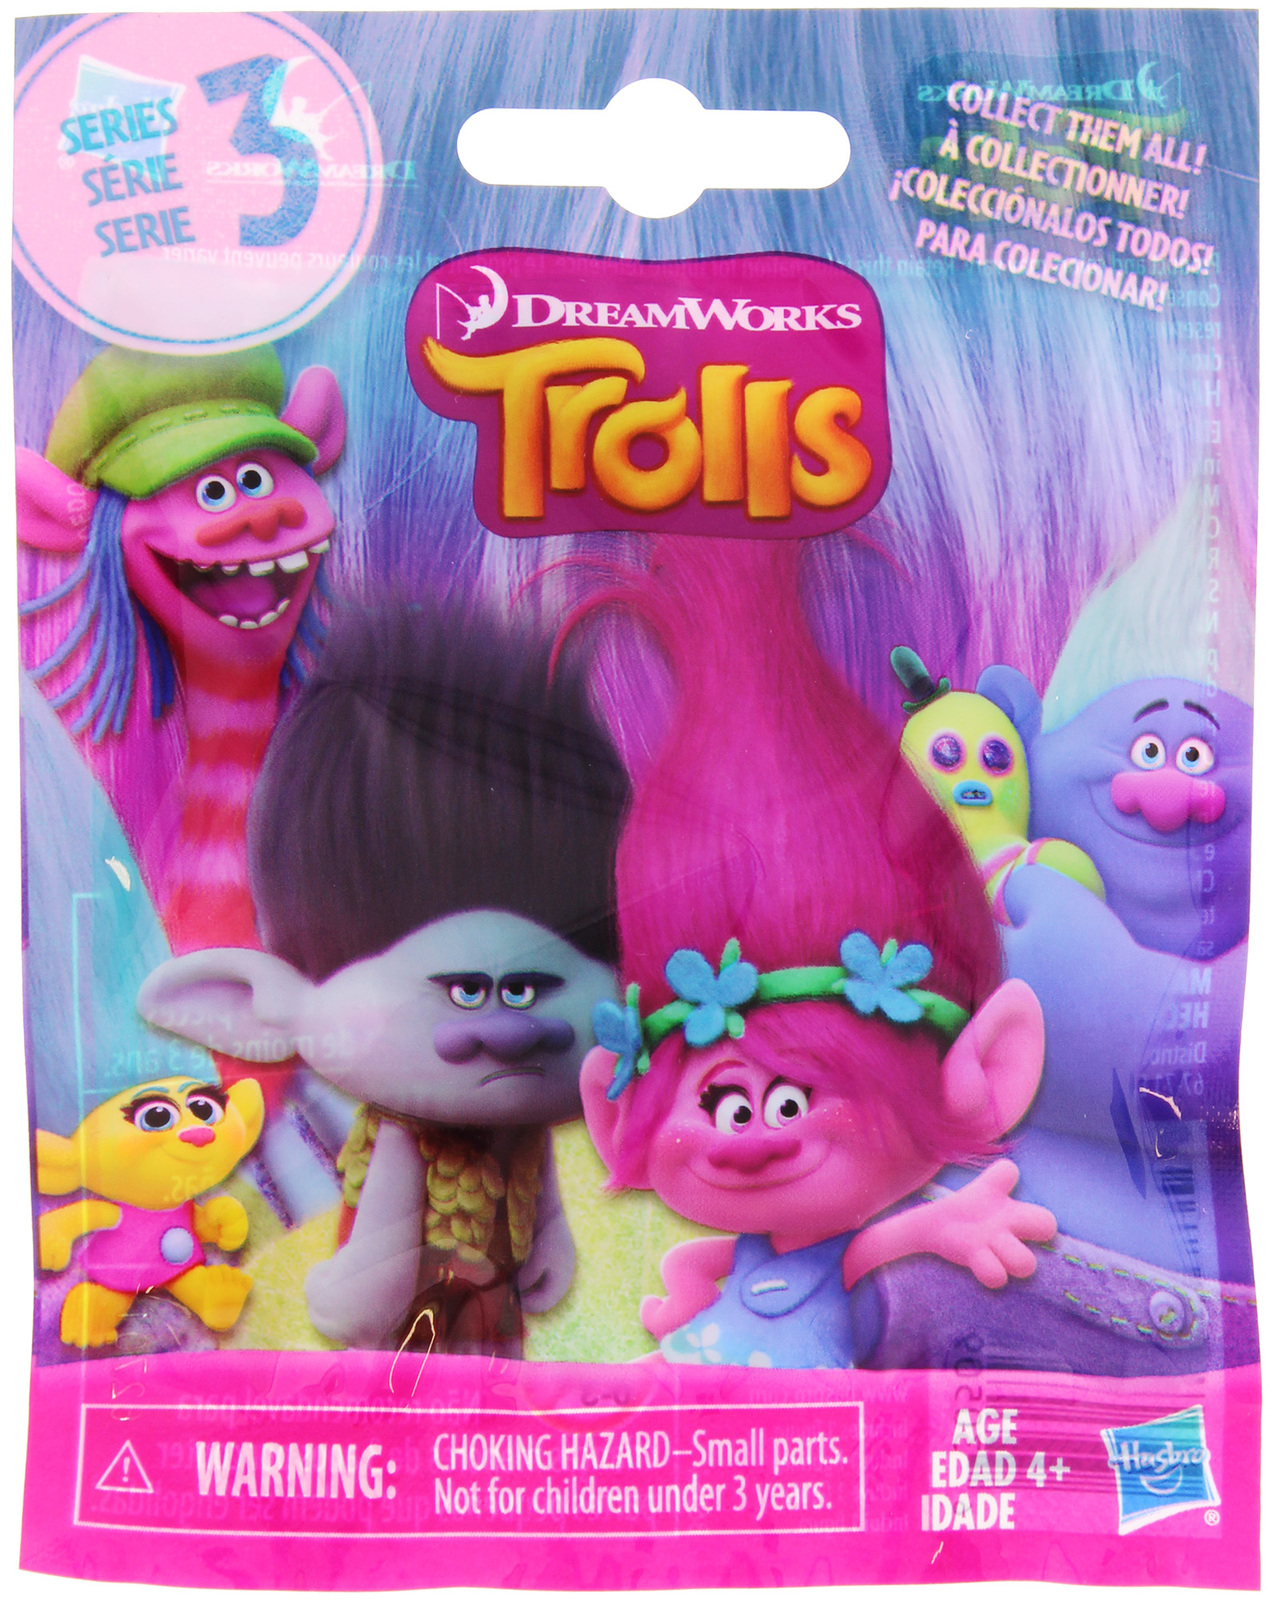 DreamWorks Trolls: Surprise Mini Figure - Blind Bag image